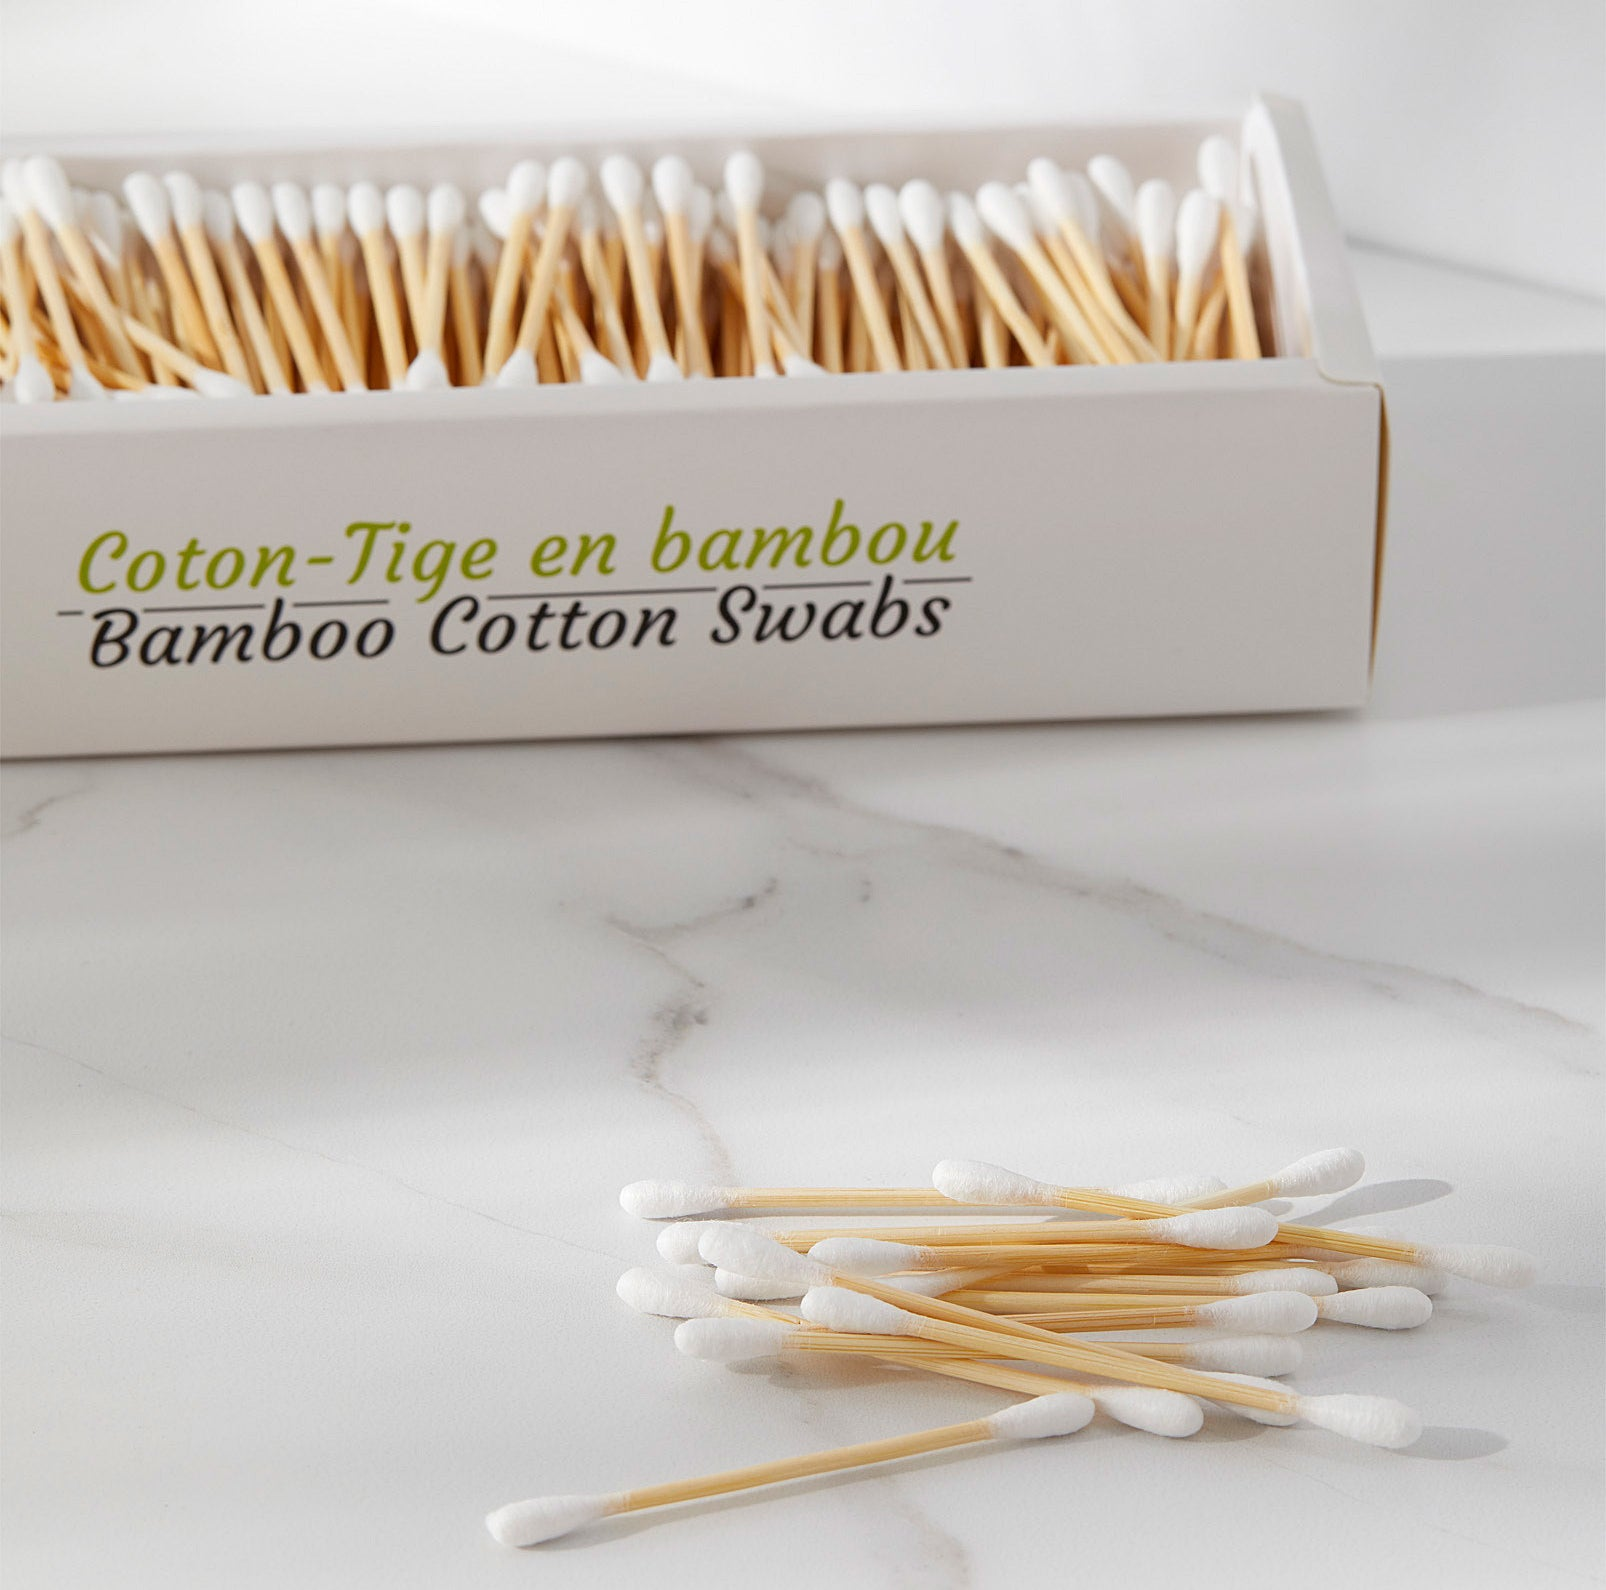 A pack of bamboo cotton swabs